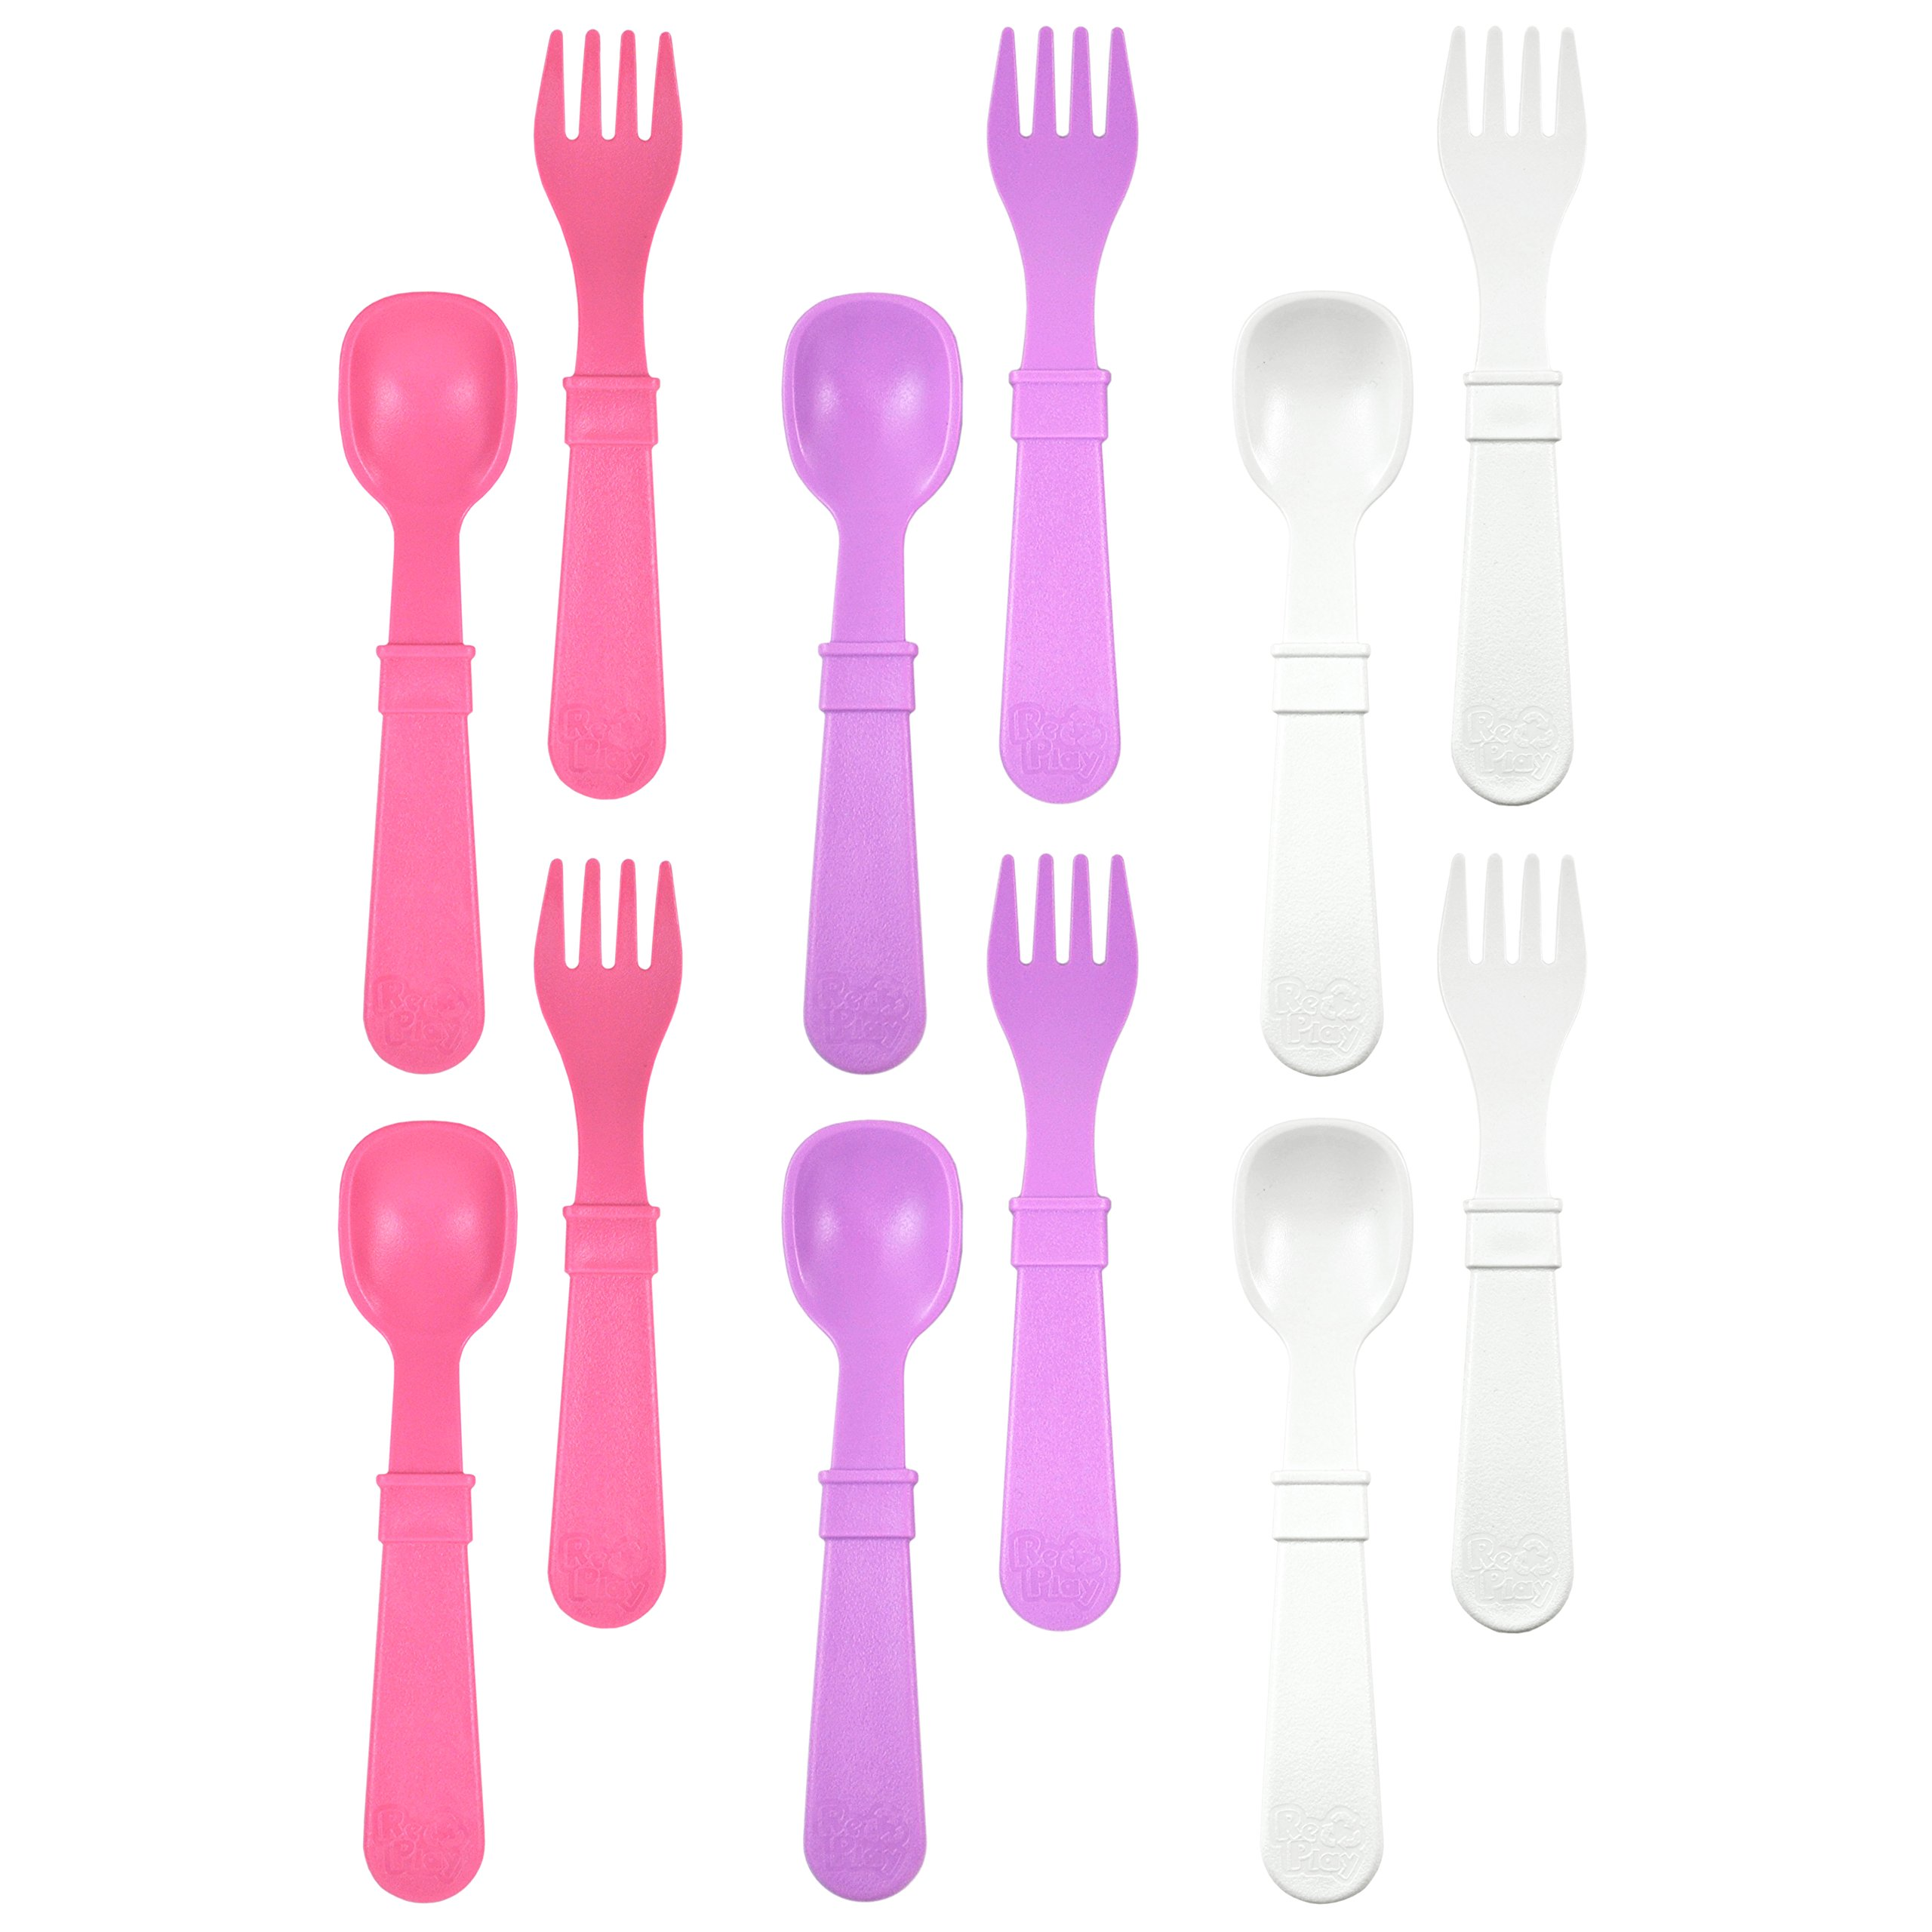 RE-PLAY Made in The USA 12pk Fork and Spoon Utensil Set for Easy Baby, Toddler, and Child Feeding in Purple, White and Bright Pink | Made from Eco Friendly Heavyweight Recycled Milk Jugs | (Berry)